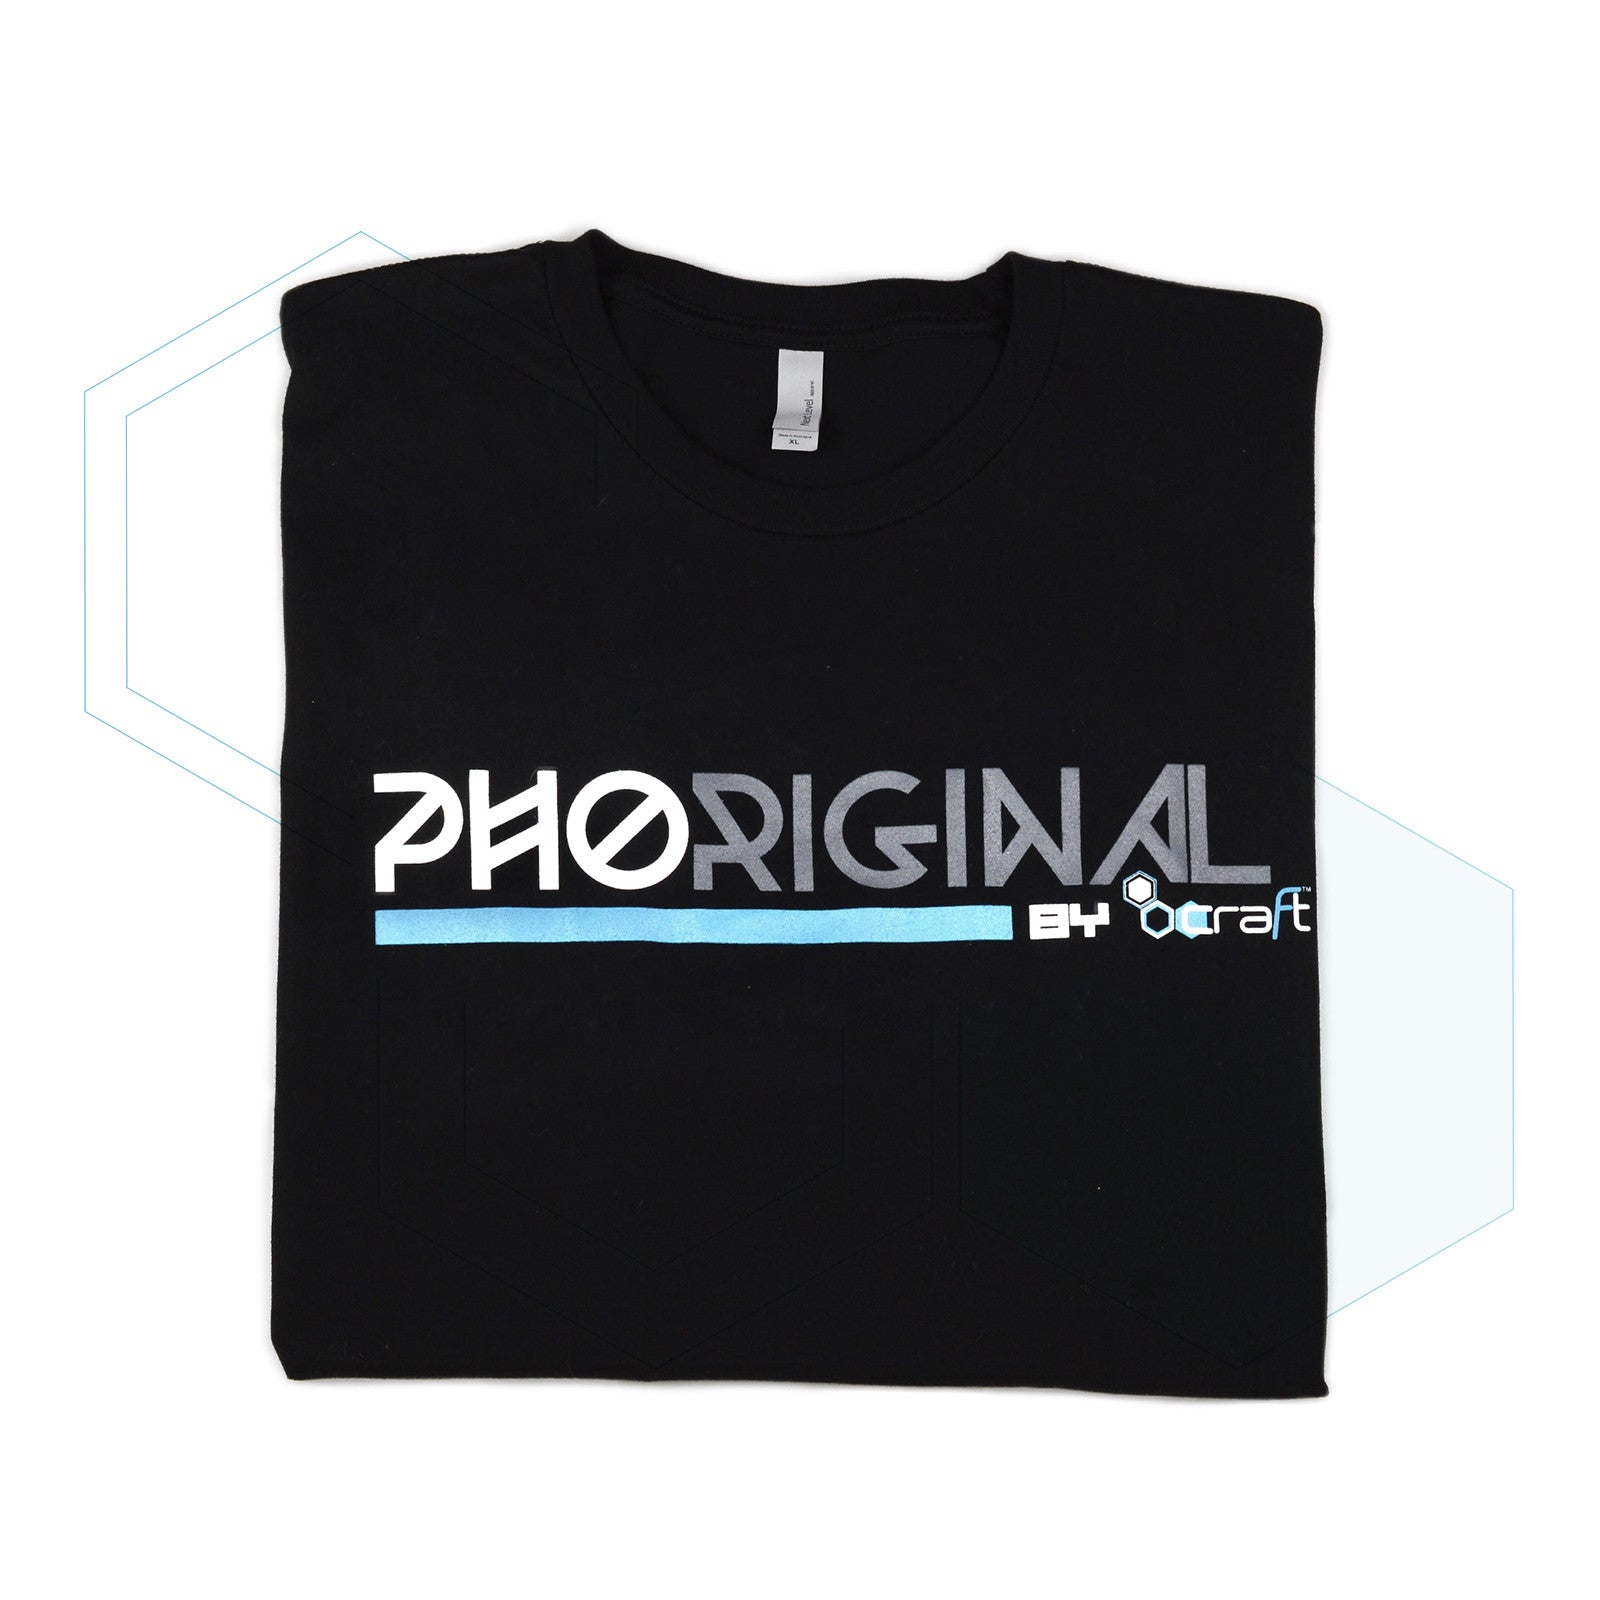 Phorginal Black Tee - Online Exclusive